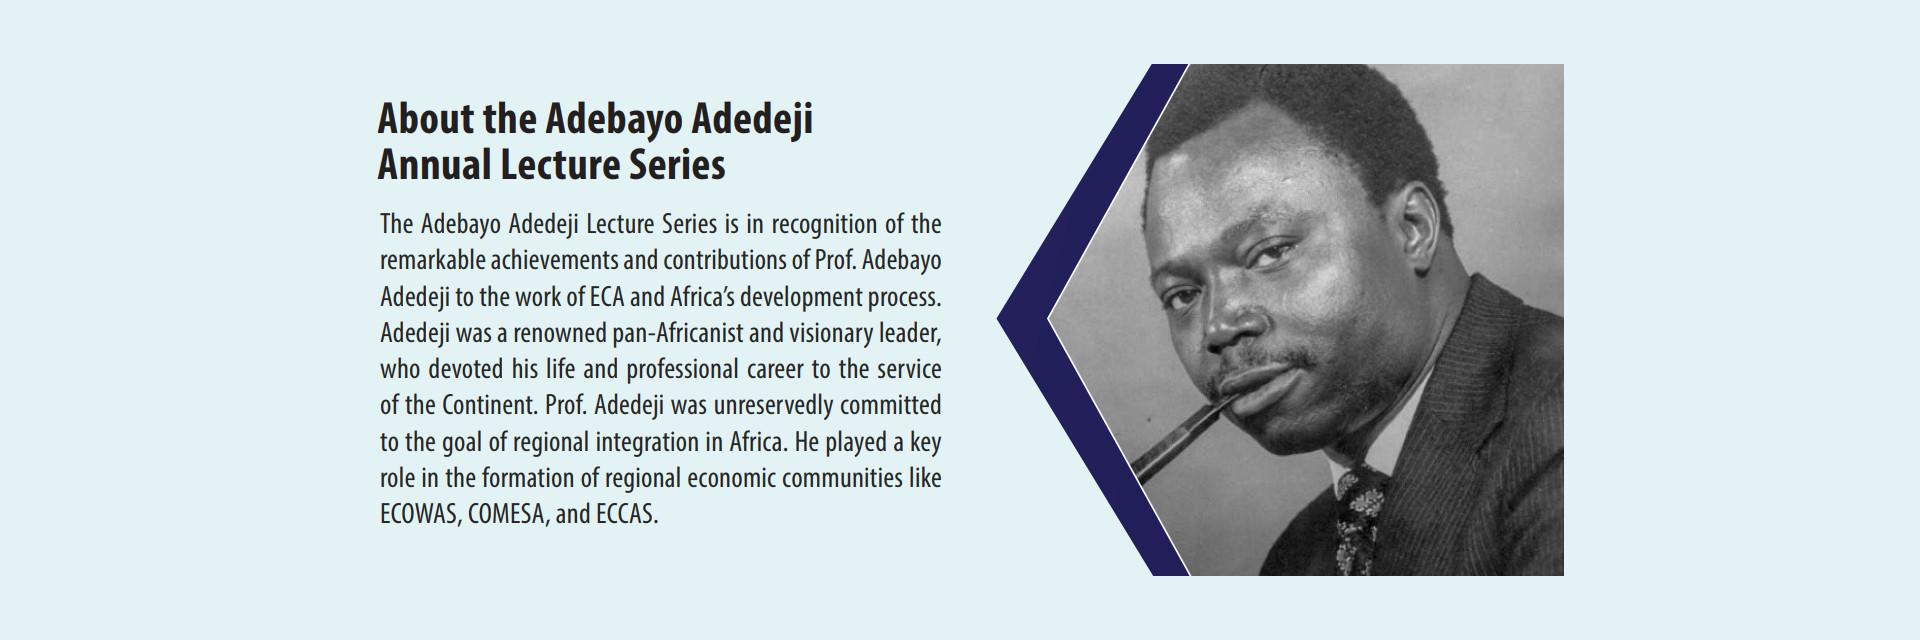 Adedeji remains a major figure in African regional integration